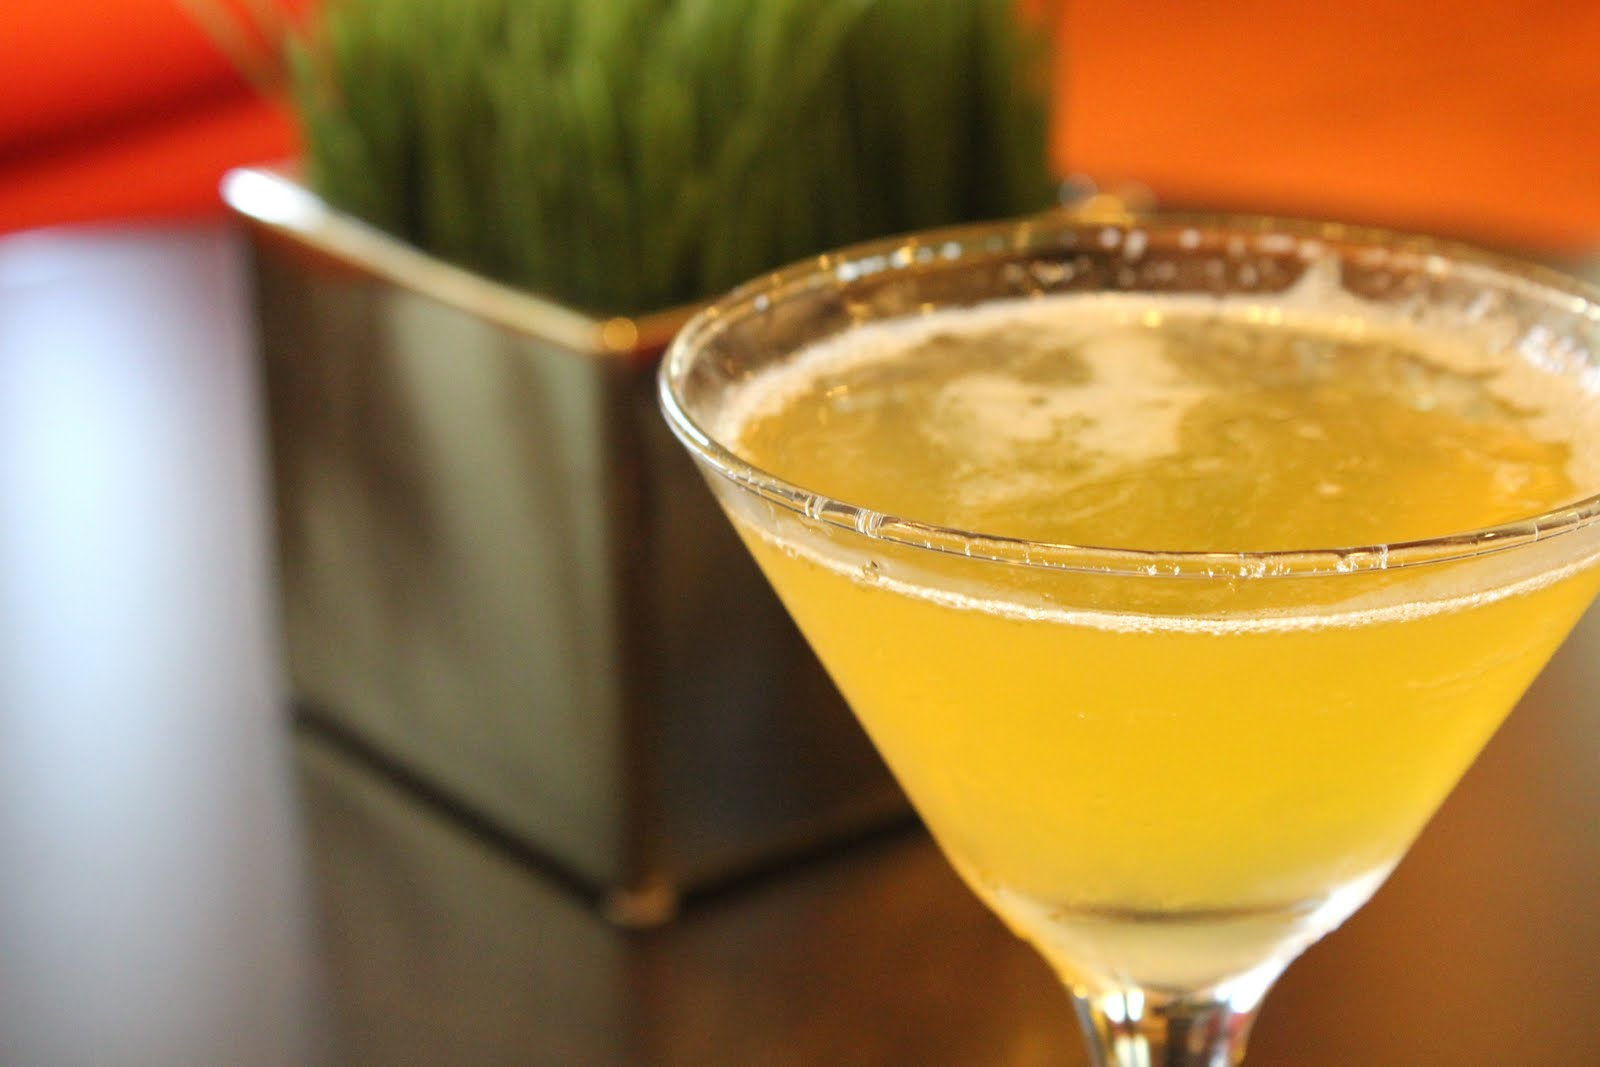 ValSoCal: Lemon Drop Martini